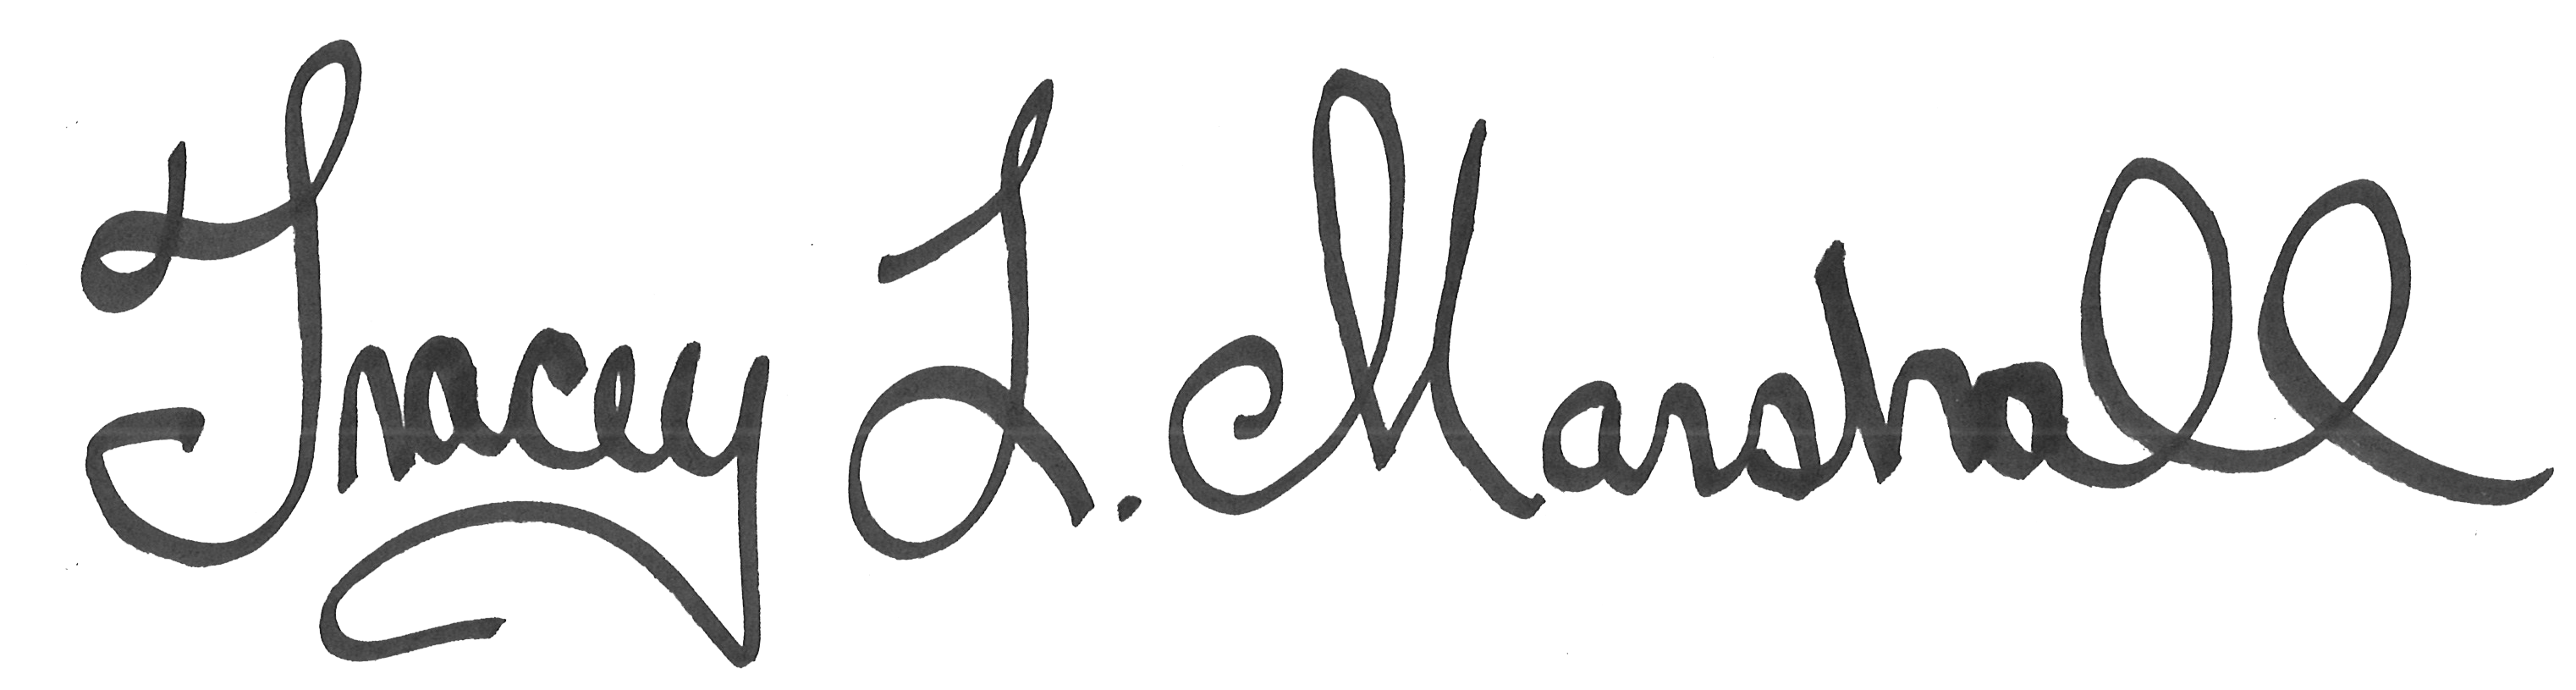 Tracey L. Marshall's Signature